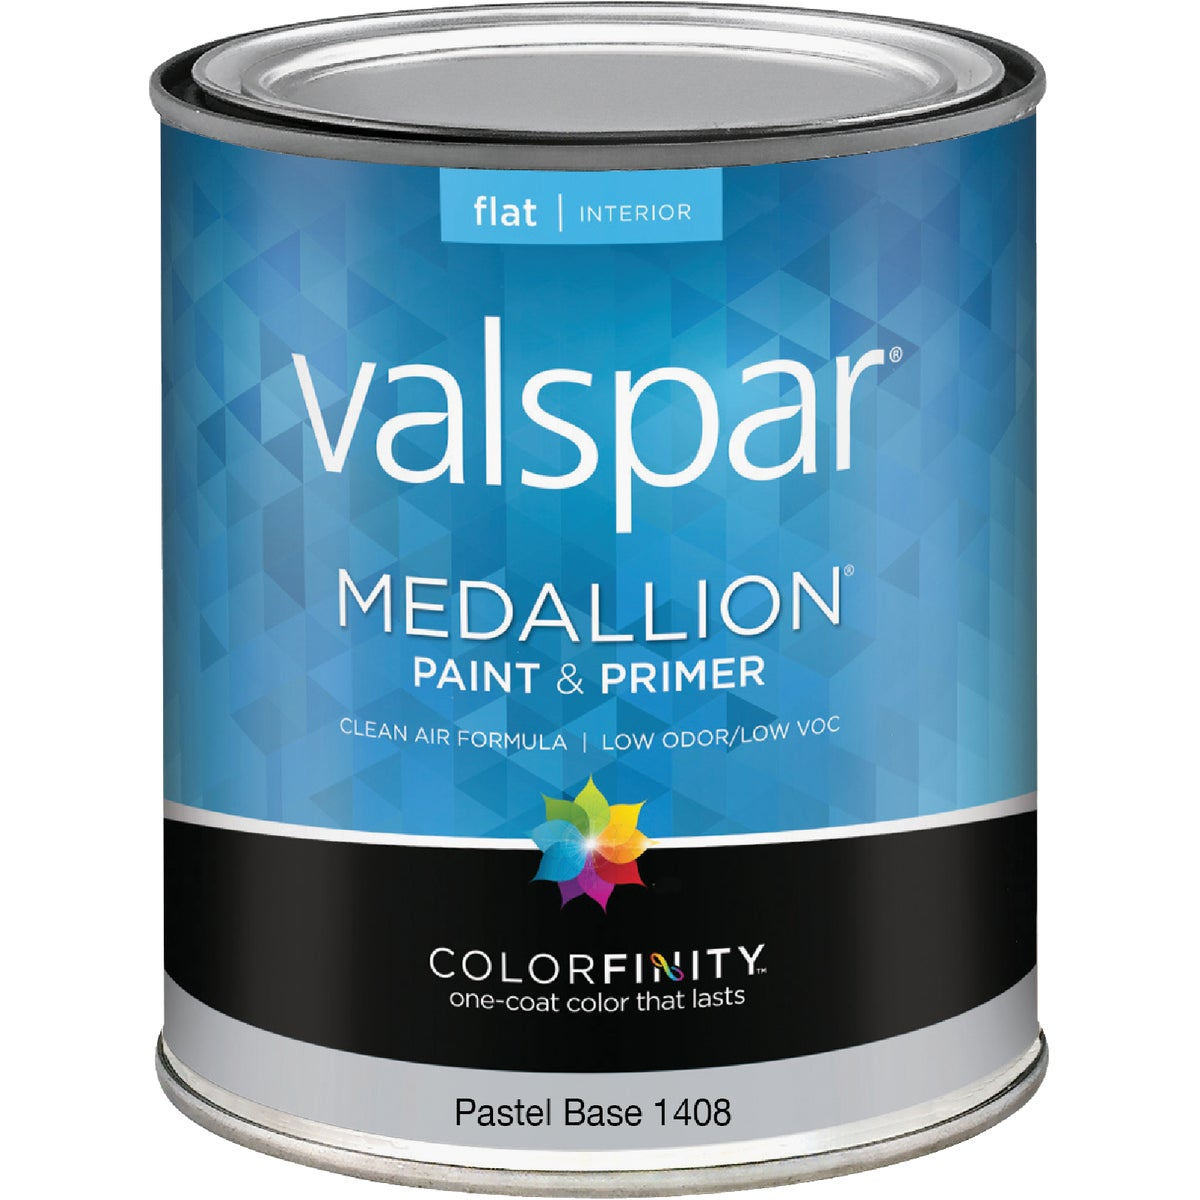 INT FLAT PASTEL BS PAINT - 027.0001408.005 by Valspar Corp